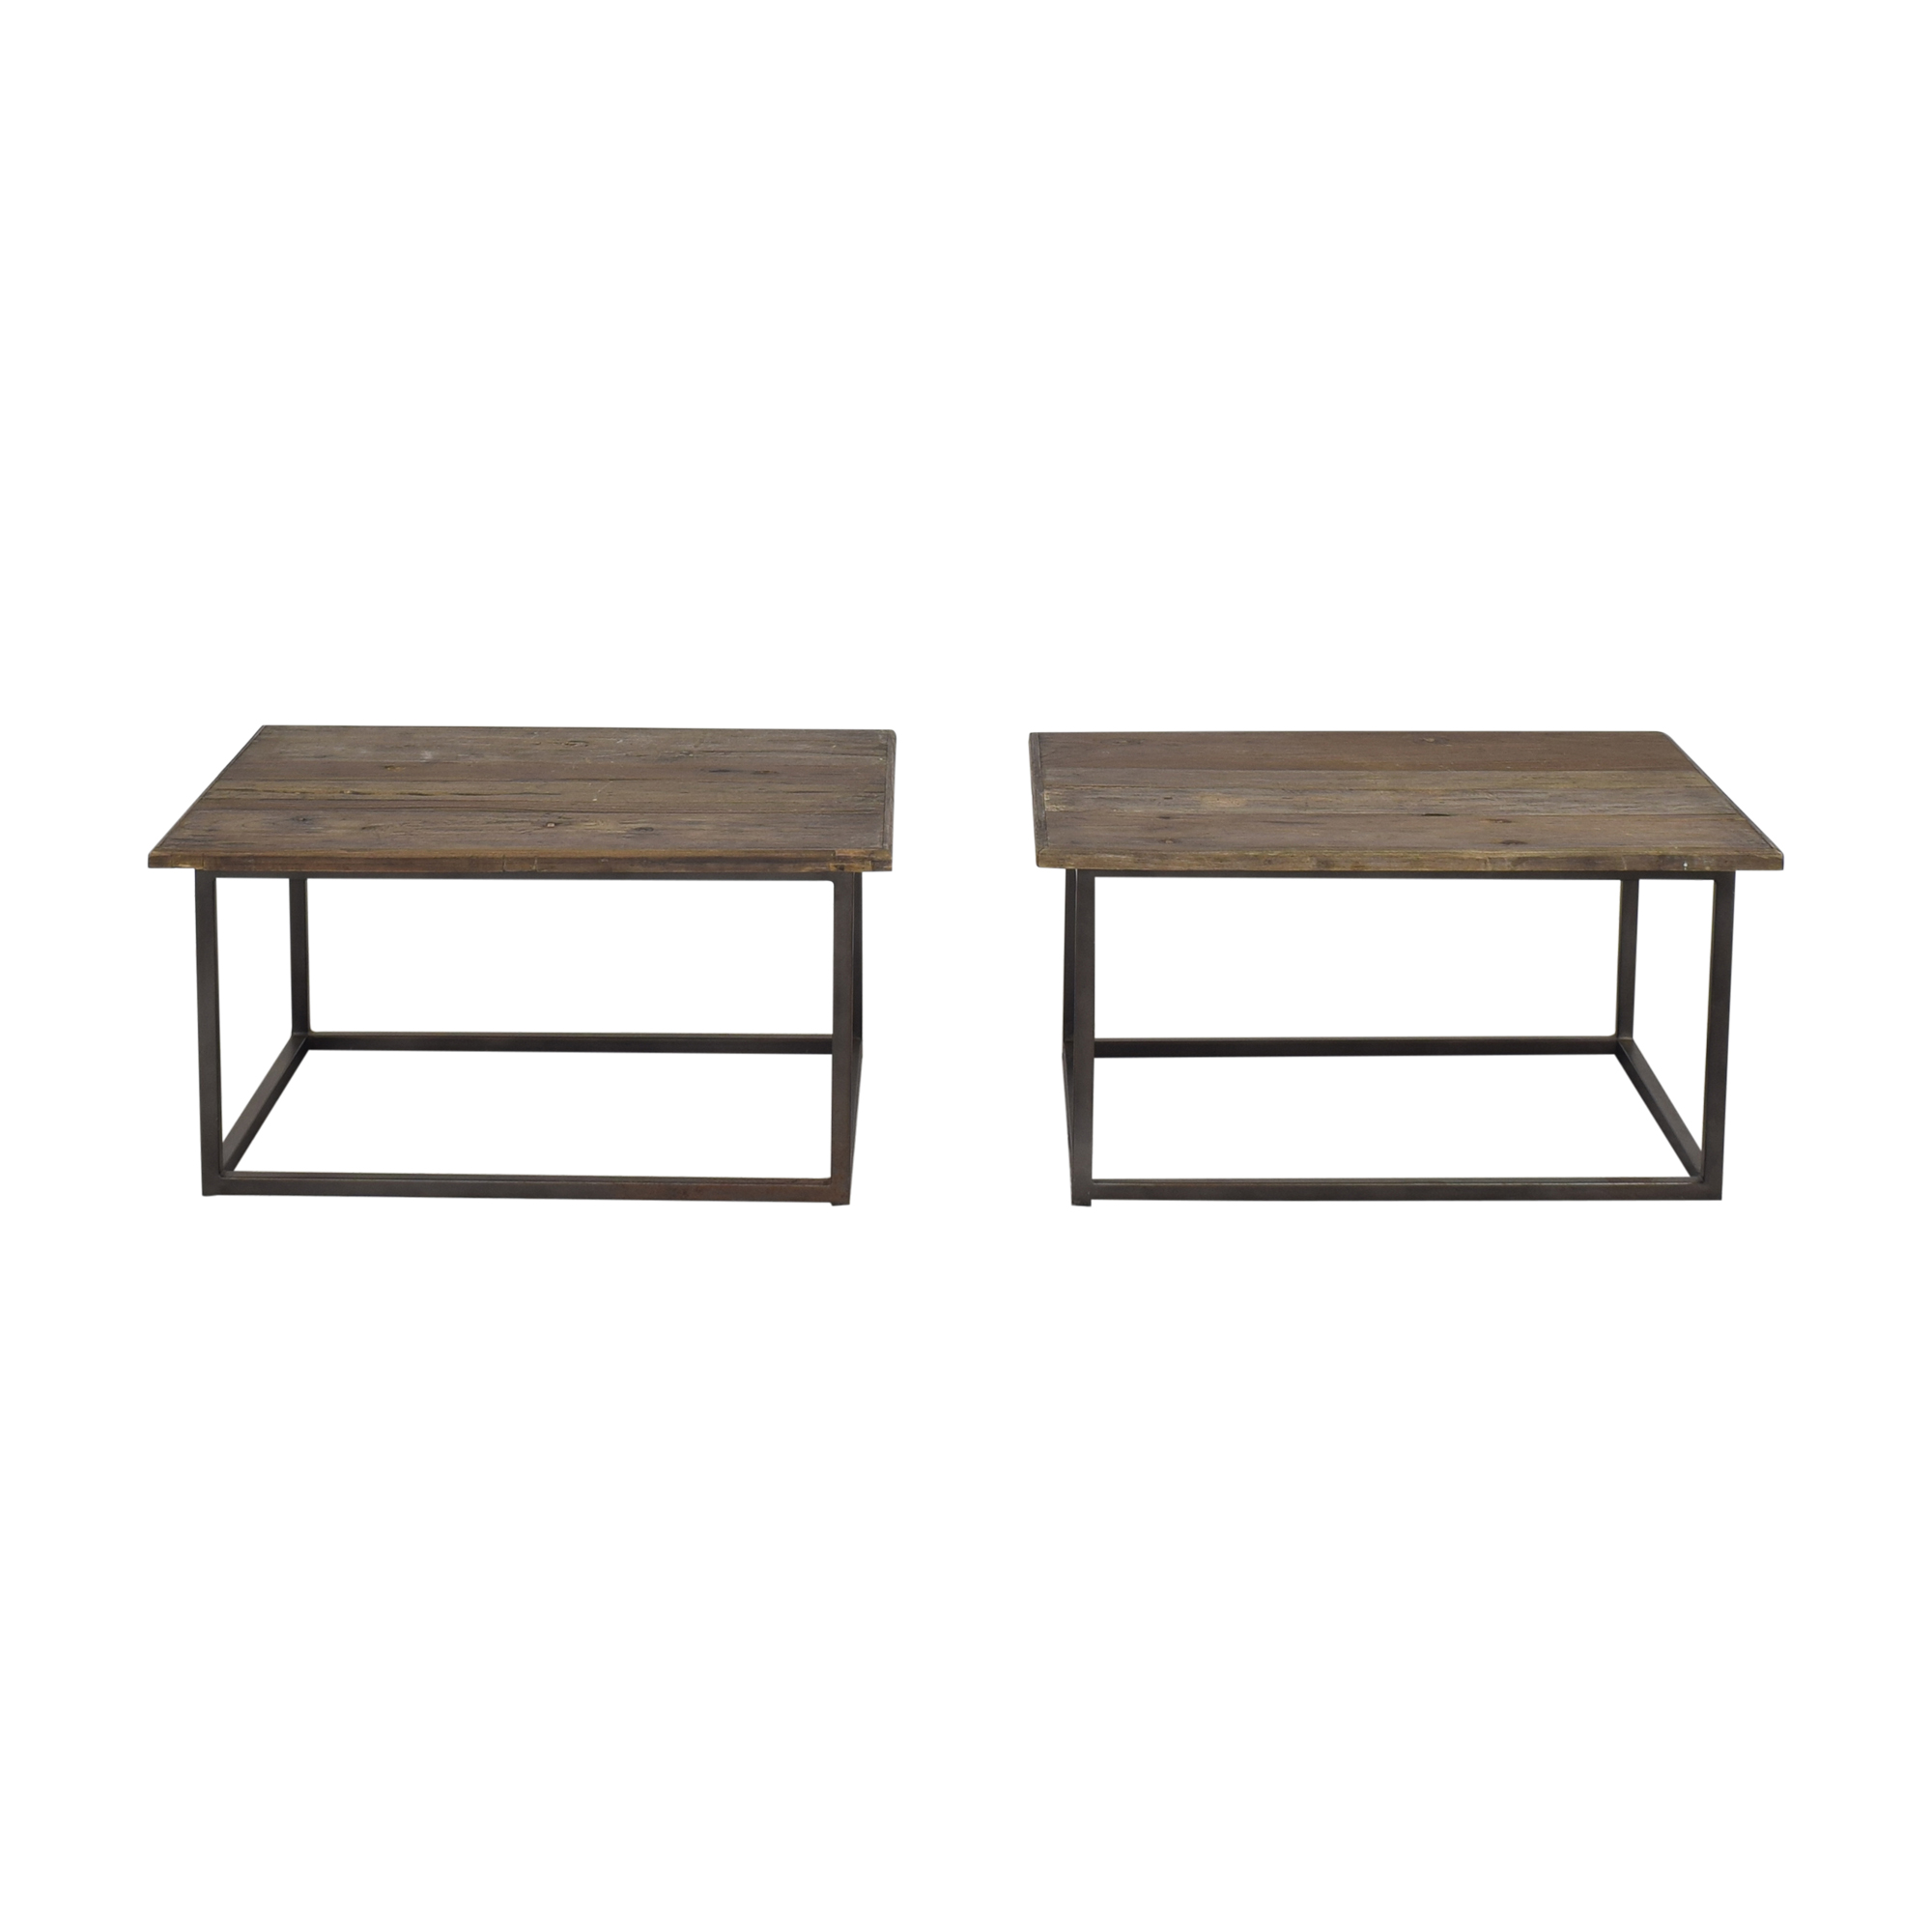 Restoration Hardware Accent Tables / End Tables